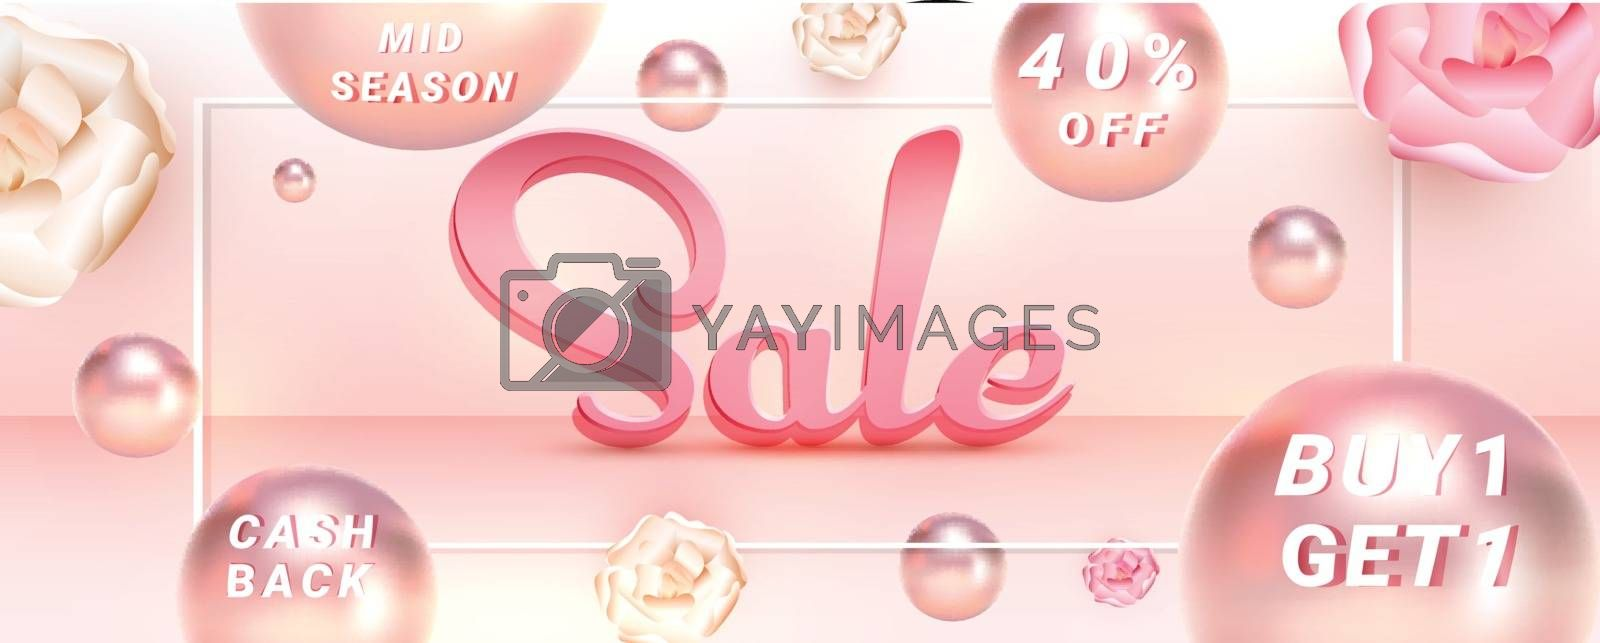 Royalty free image of Creative sale header or banner design with 40% discount offer an by aispl